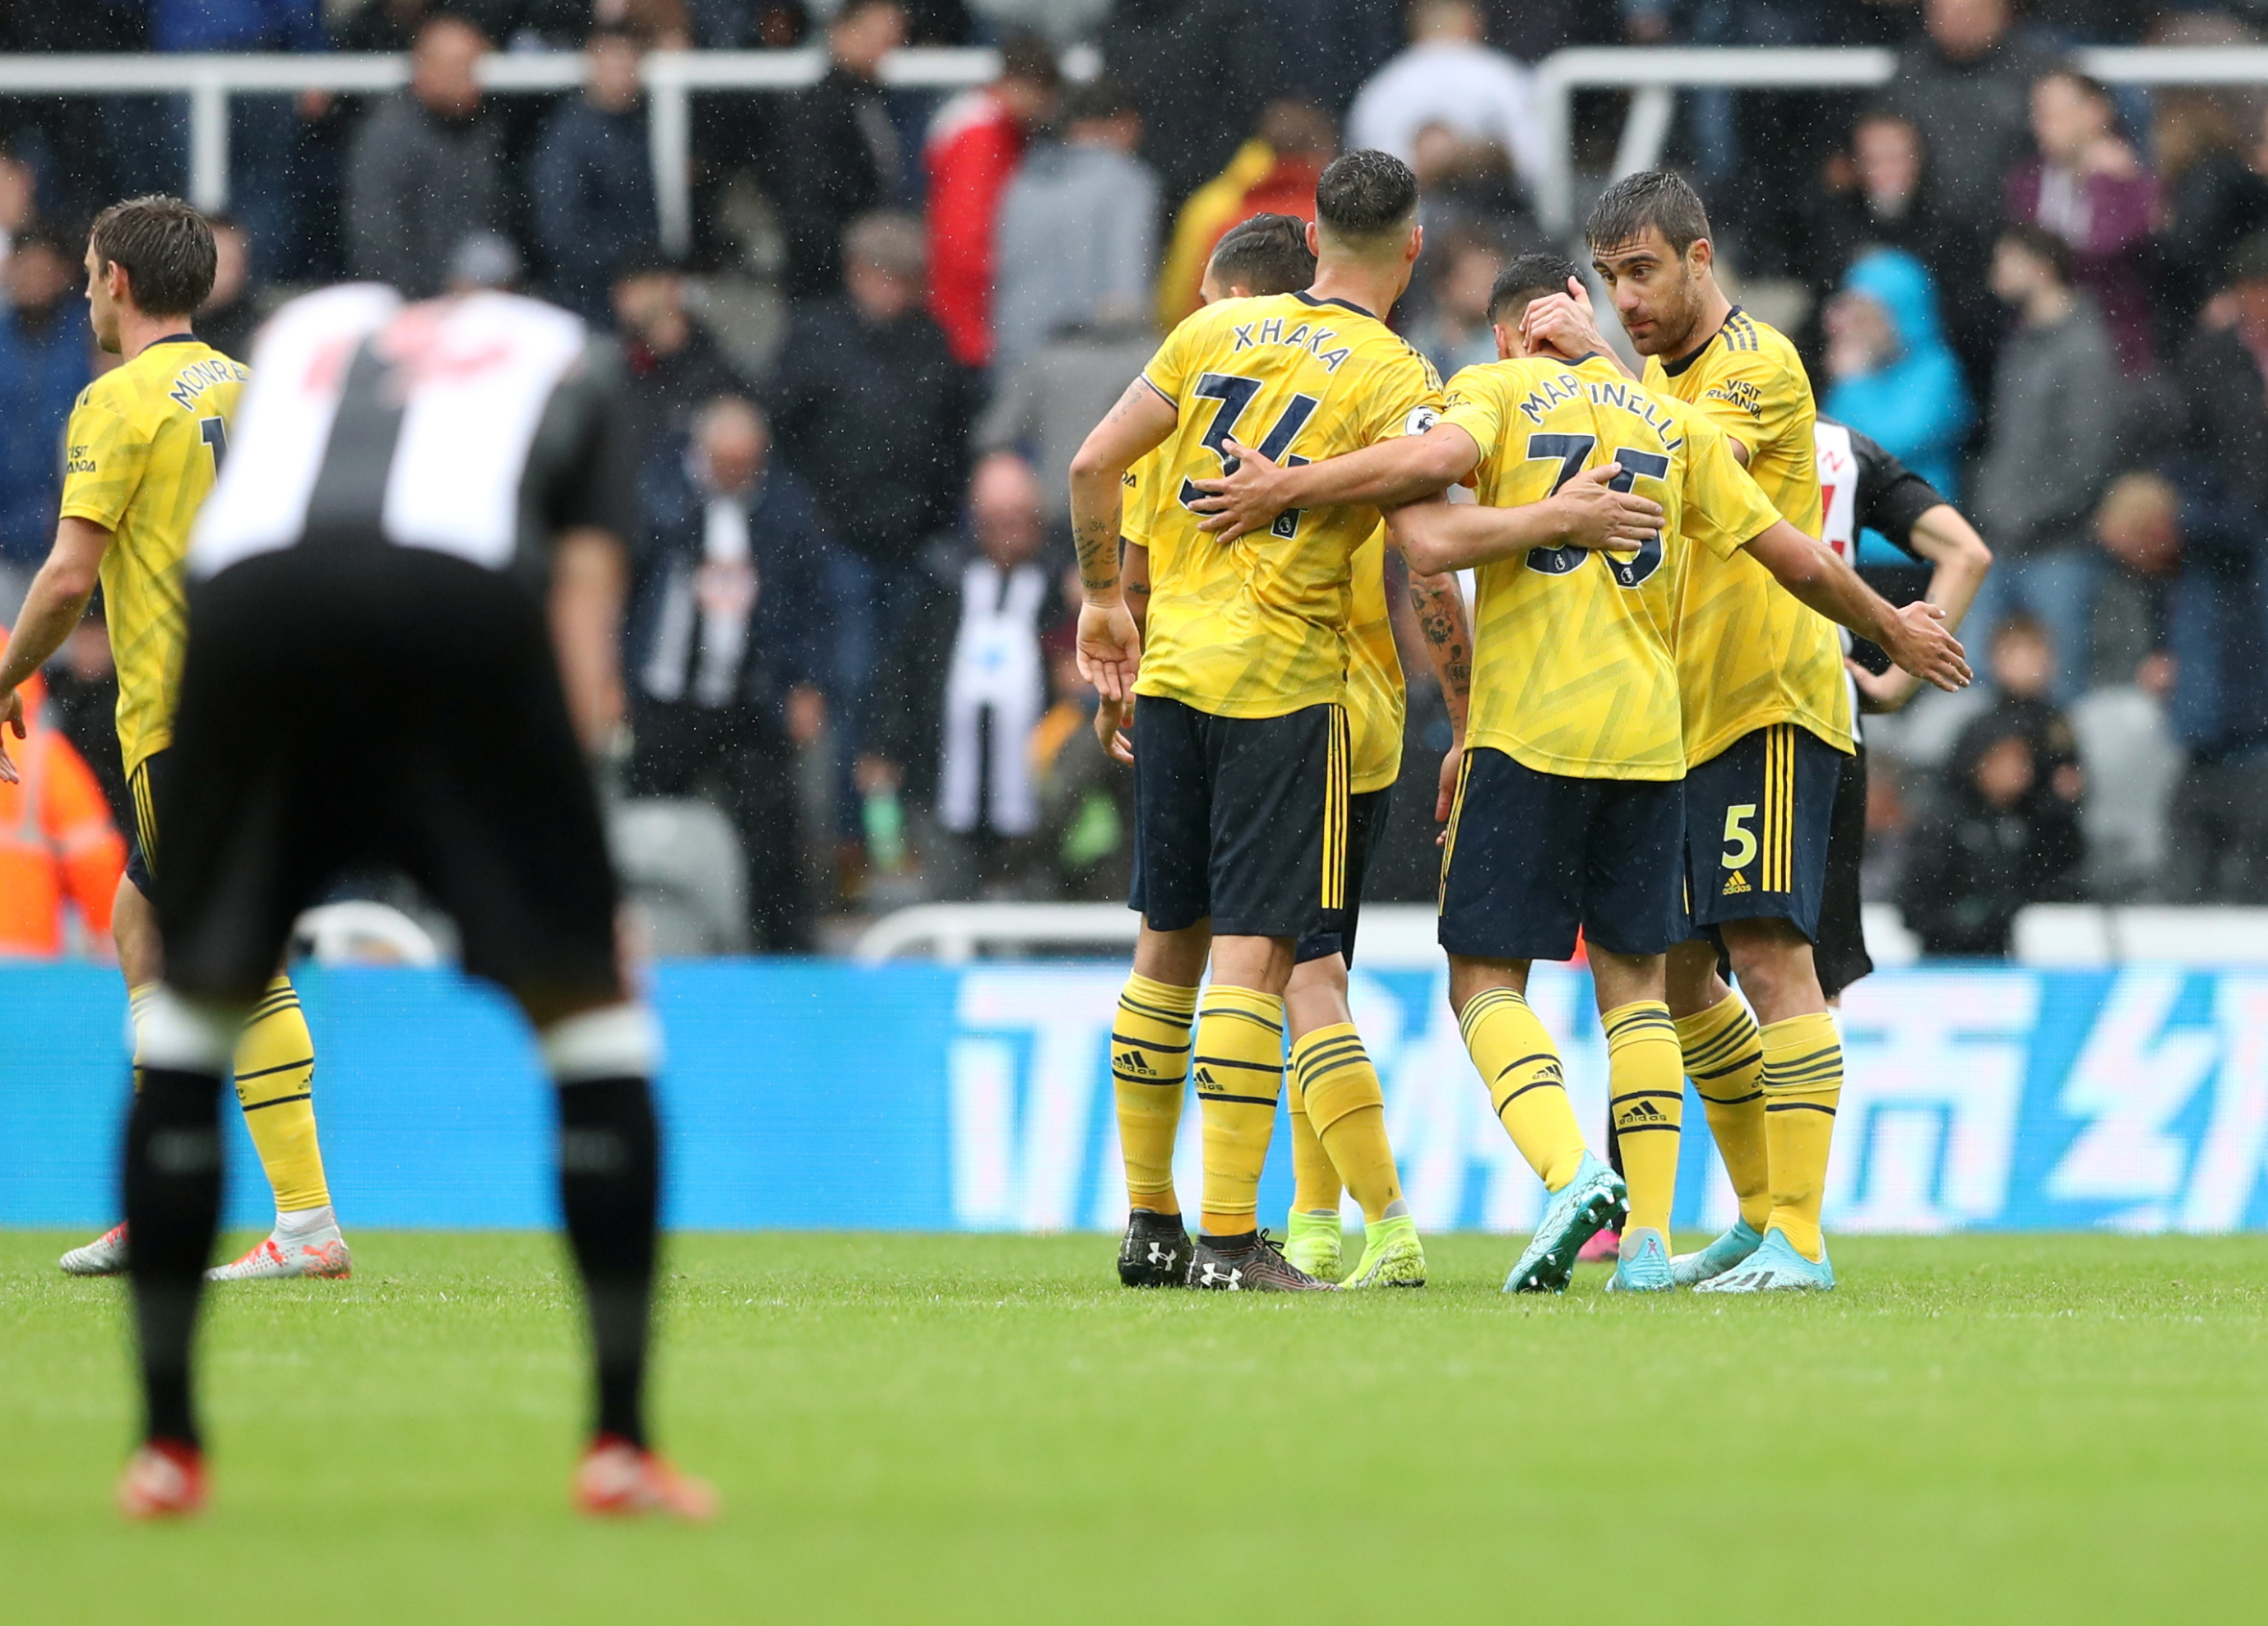 Soccer Football - Premier League - Newcastle United v Arsenal - St James' Park, Newcastle, Britain - August 11, 2019   Arsenal players celebrate after the match    REUTERS/Scott Heppell    EDITORIAL USE ONLY. No use with unauthorized audio, video, data, fixture lists, club/league logos or